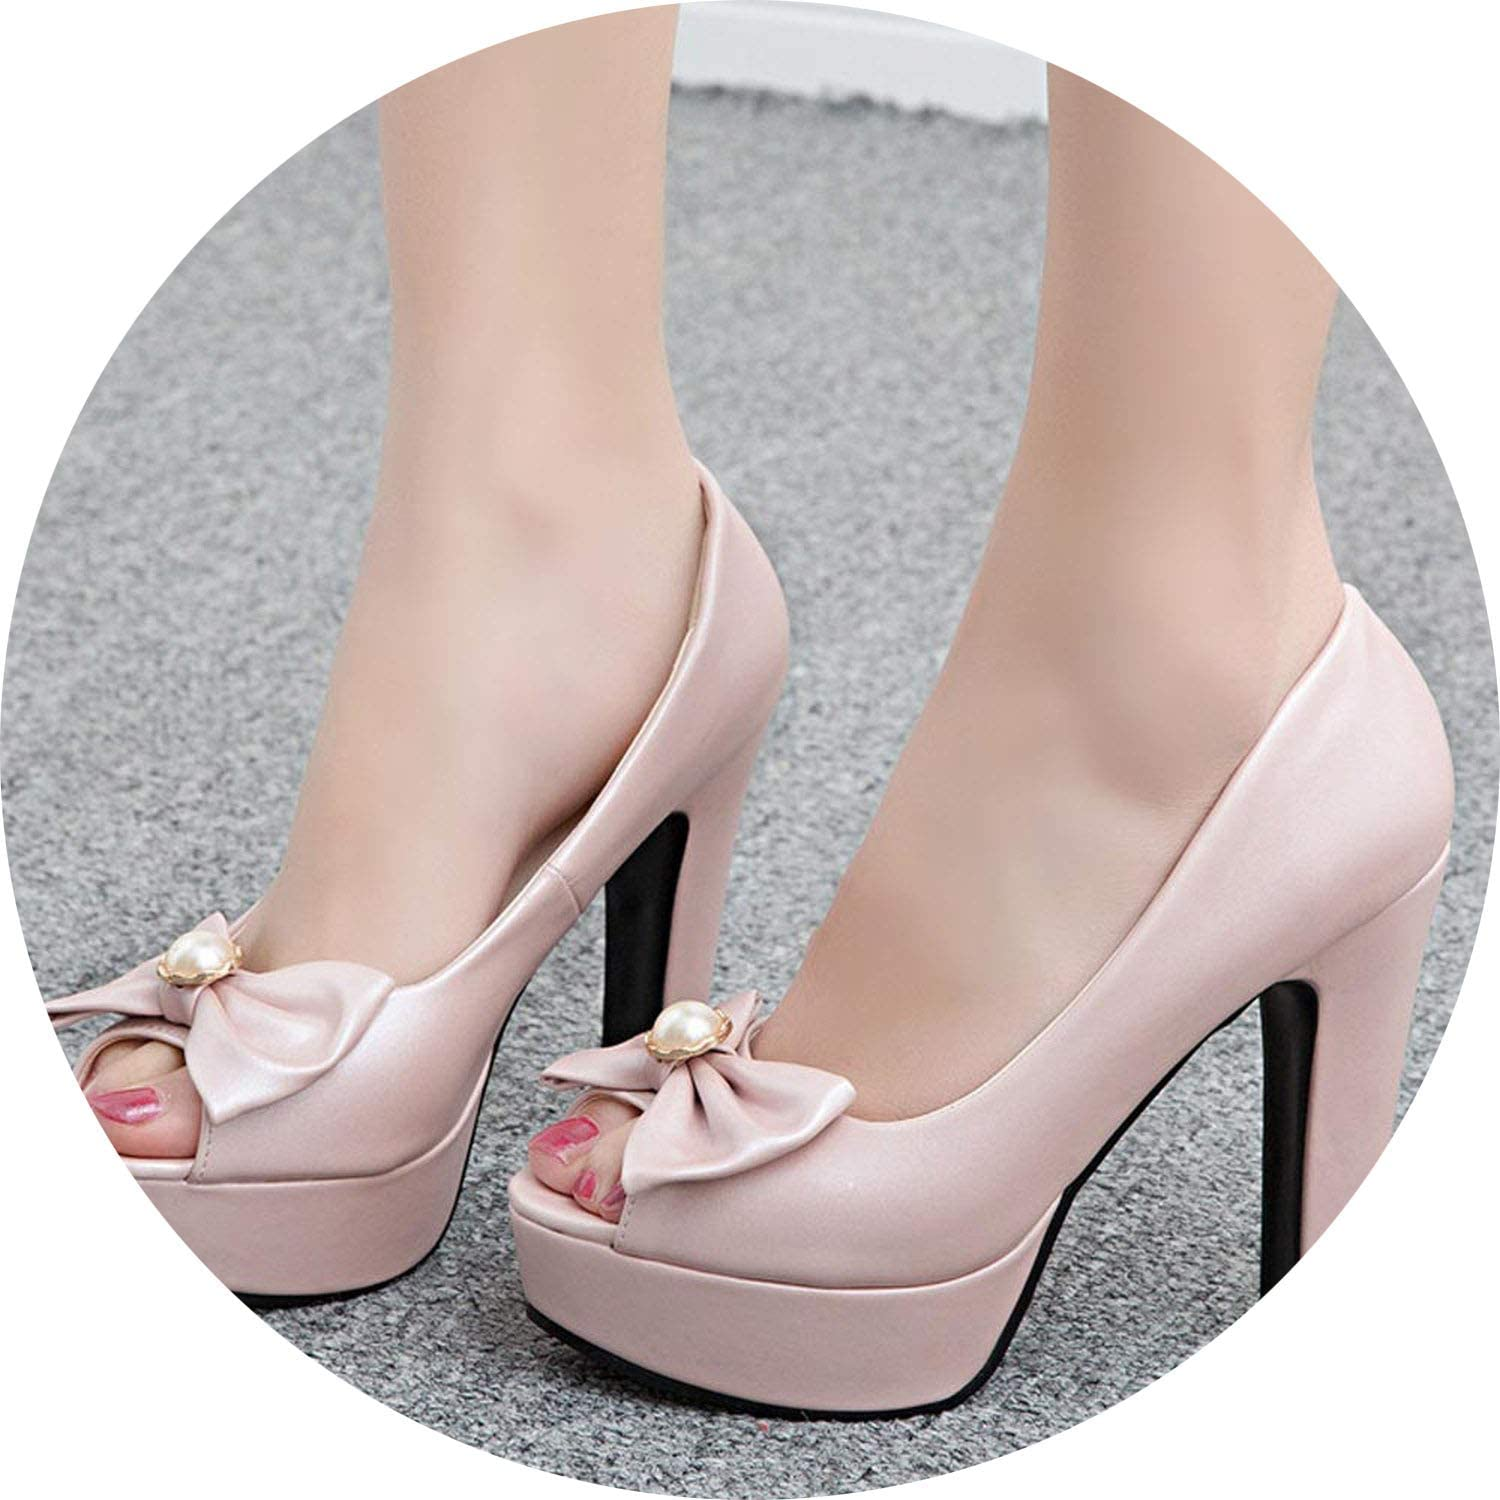 FINDYOU Women Super High Heel Wedding Pumps 12cm Peep Toe Sweet Bowtie Sexy Party shoes Lady Platform